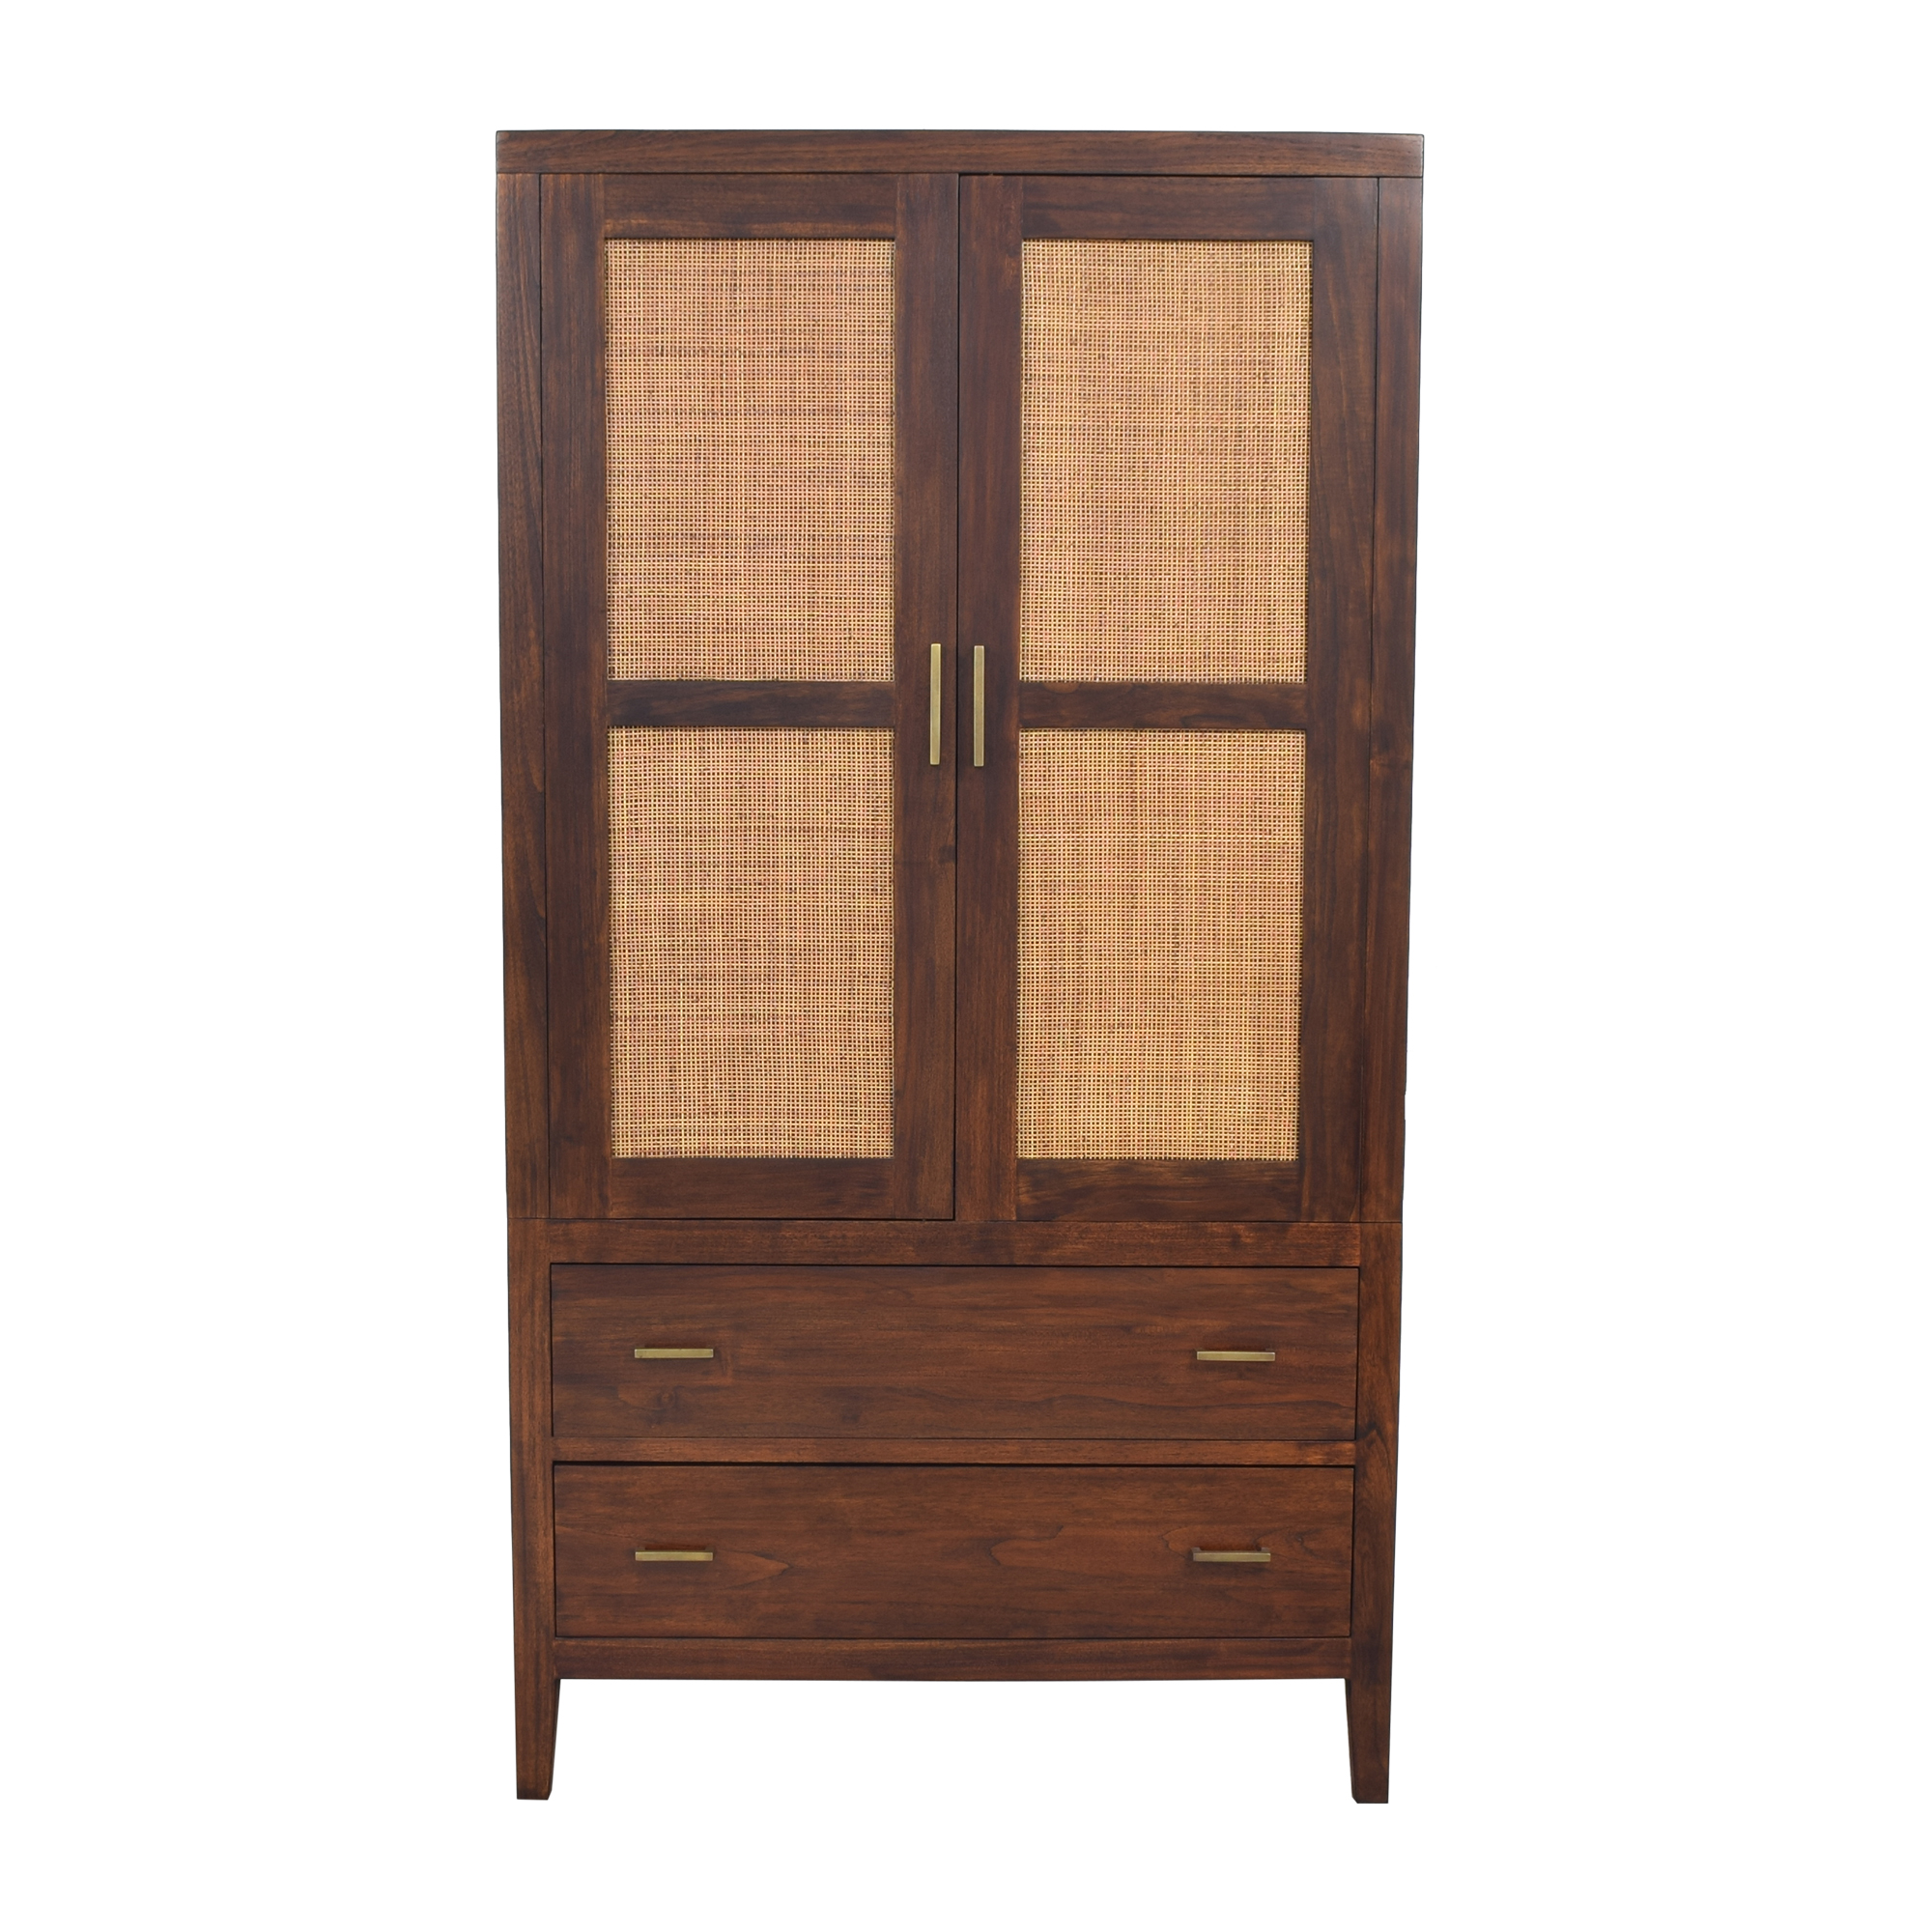 buy Crate & Barrel Entertainment Center Crate & Barrel Wardrobes & Armoires